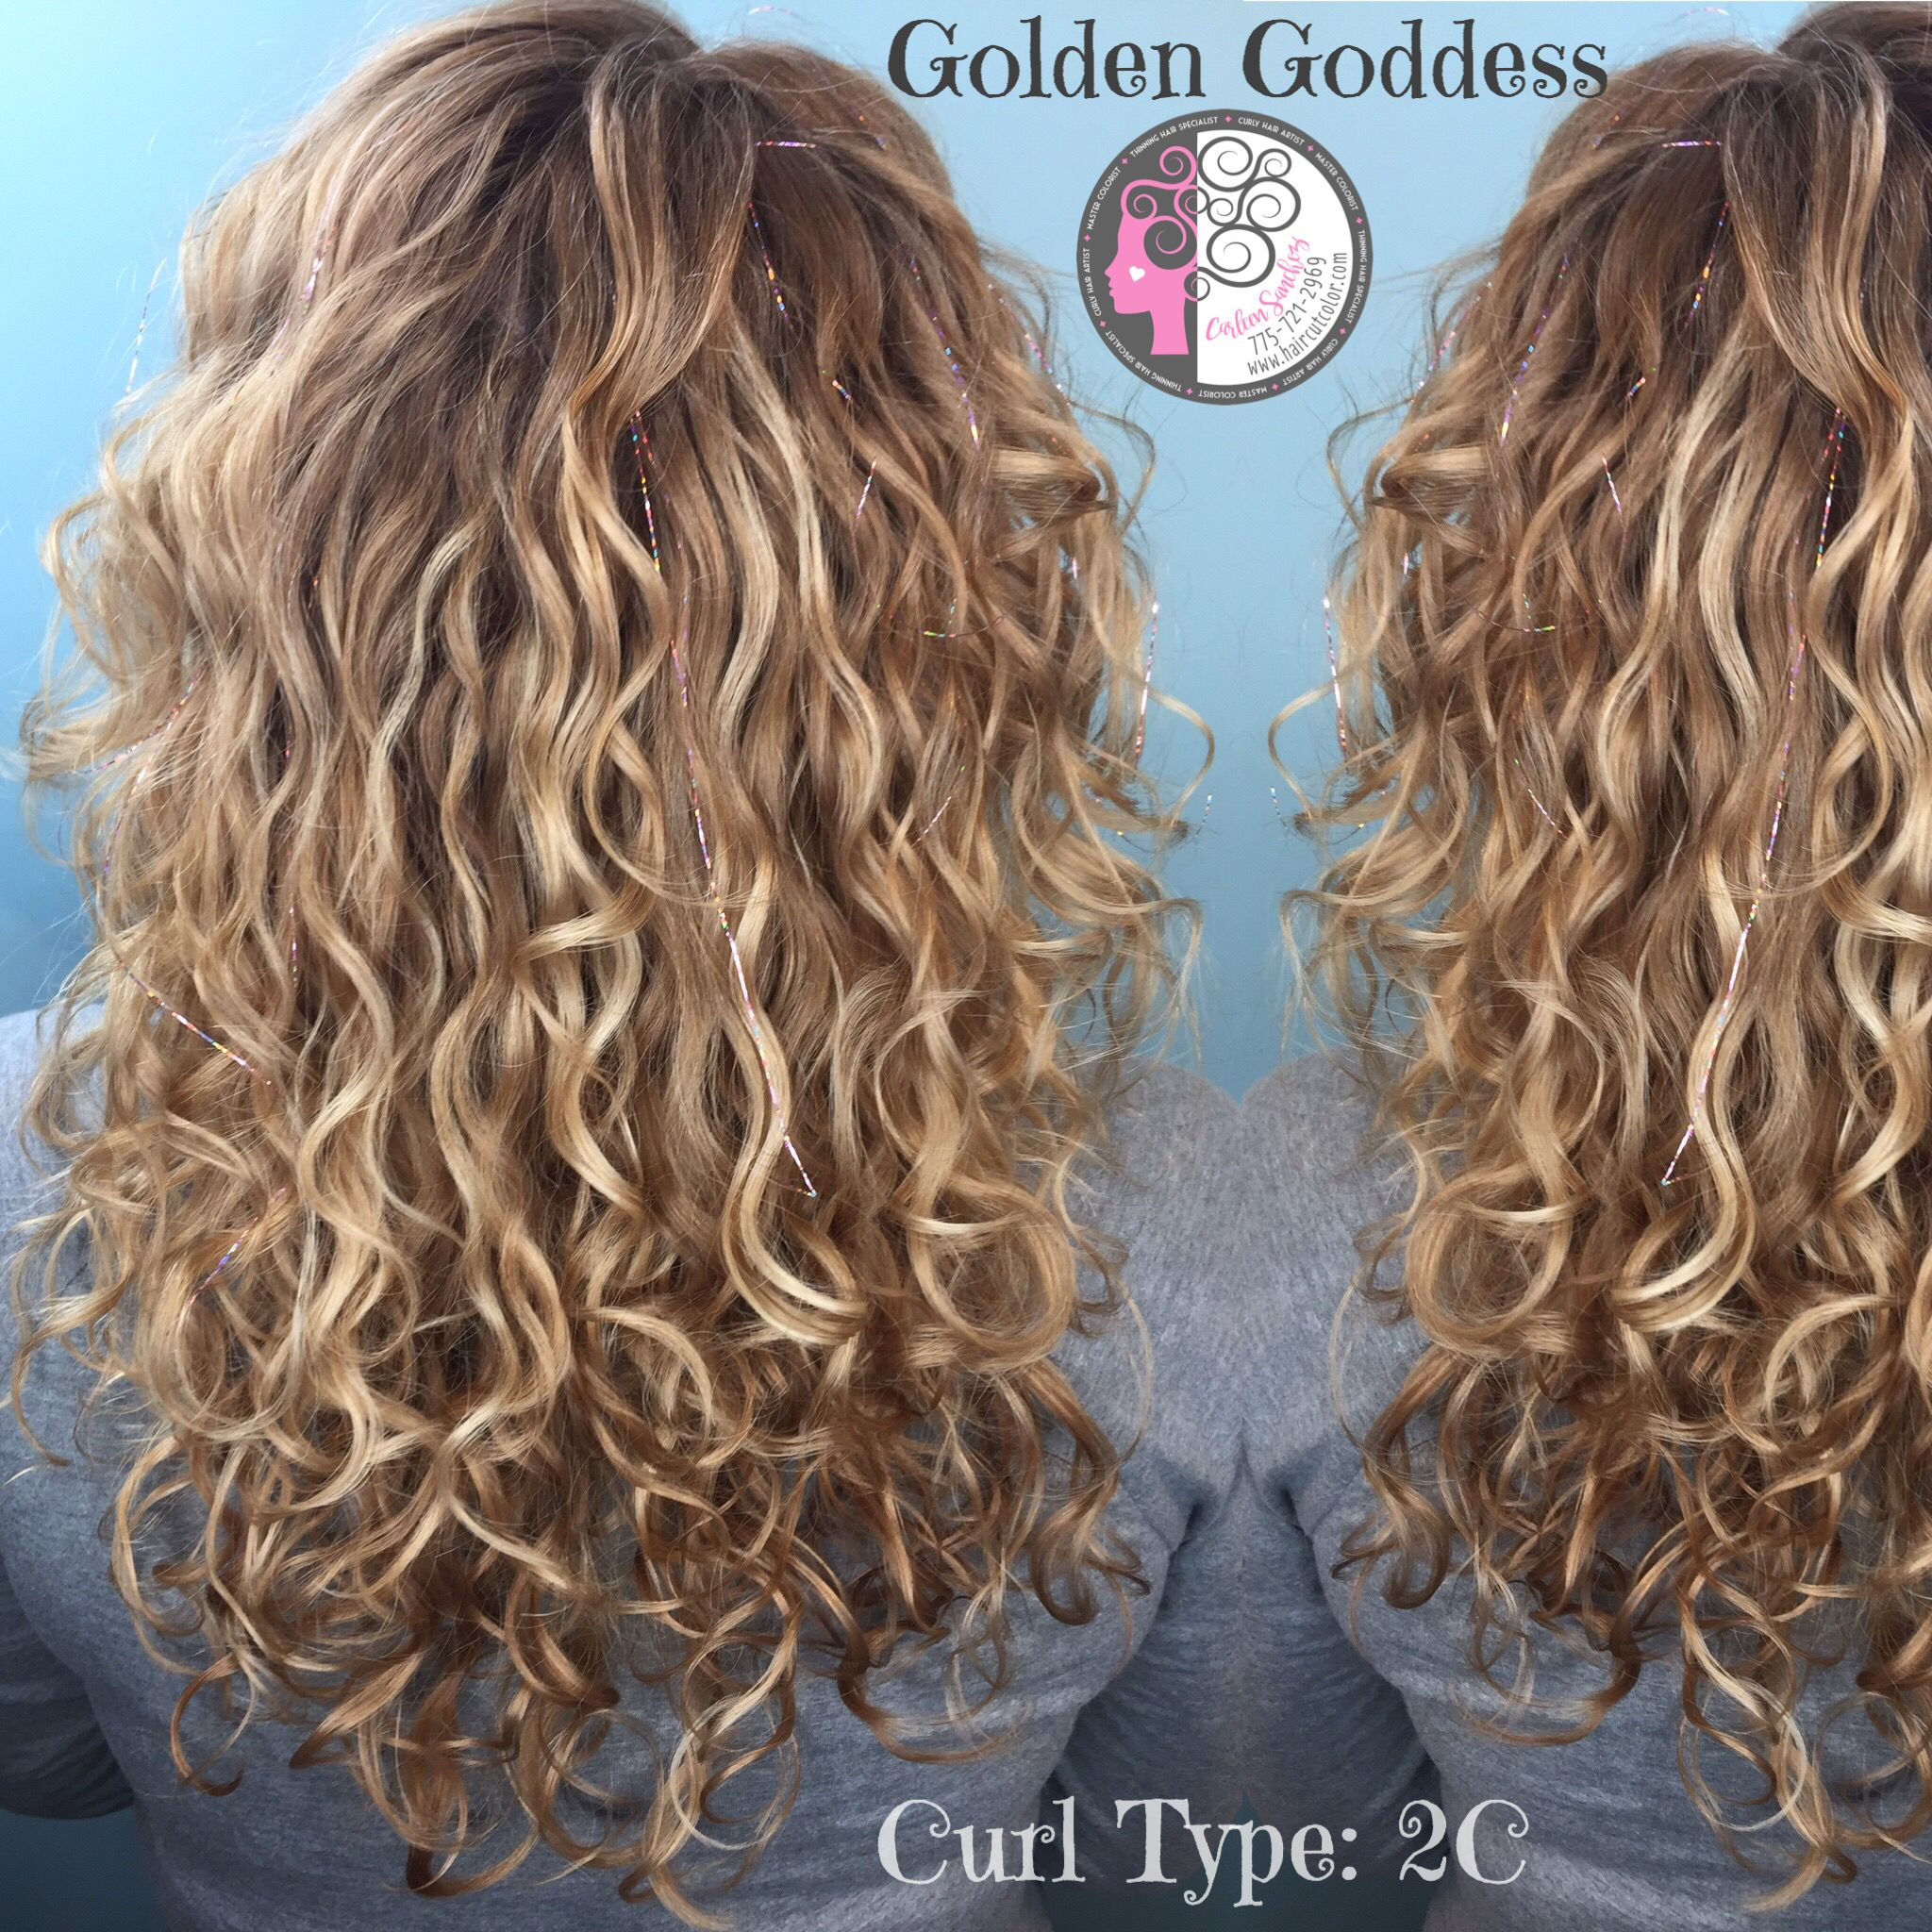 Naturally Curly Balayage Highlights Blond Hair By Carleen